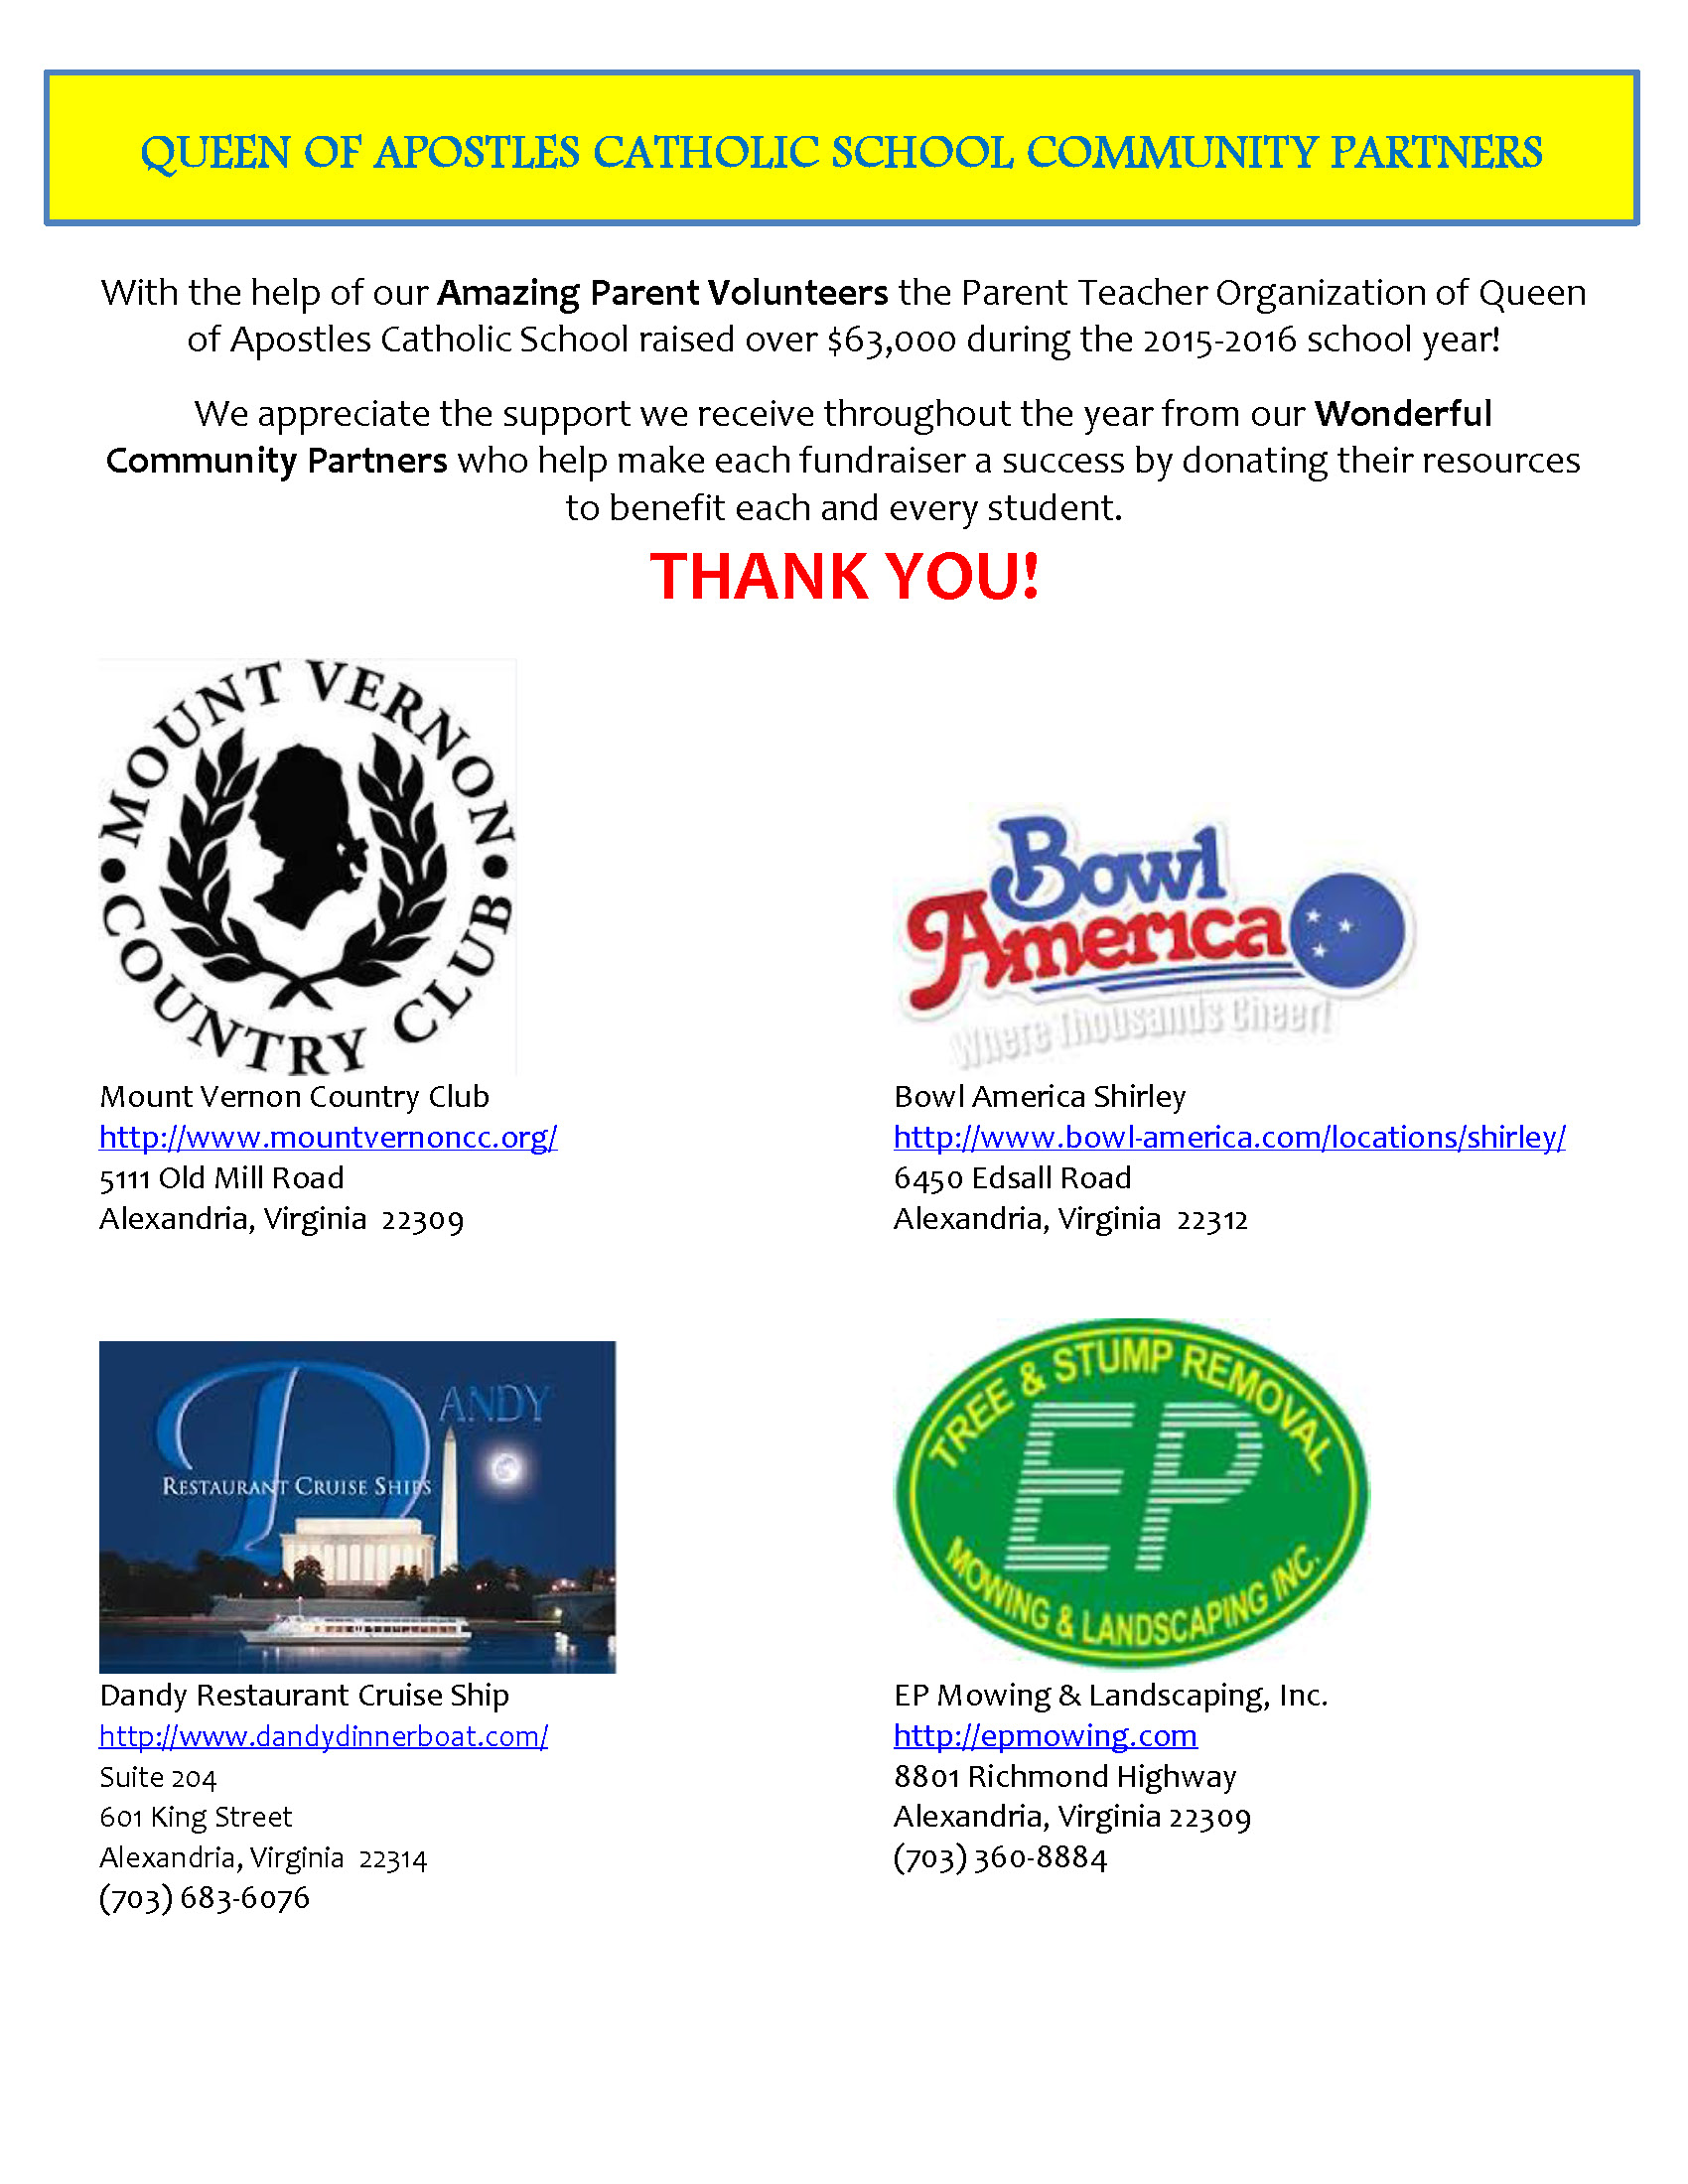 2015-2016-community-partners-fnl_page_1